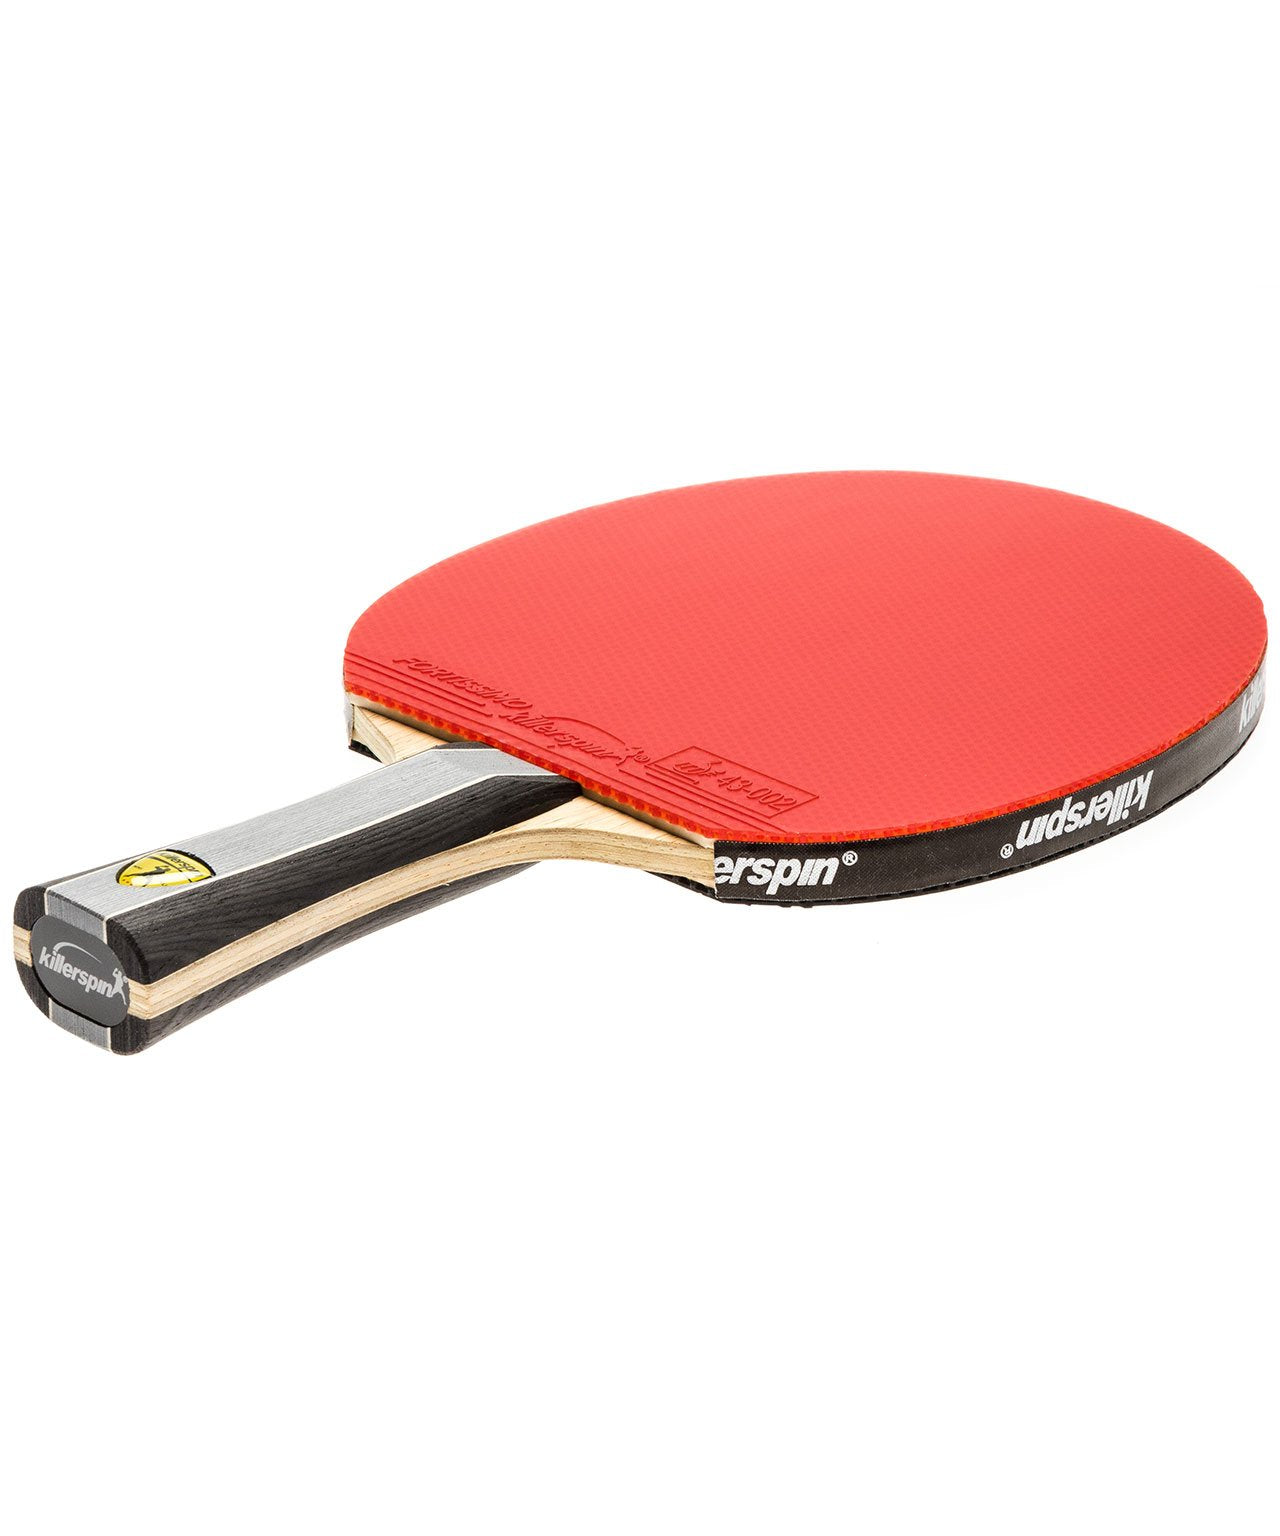 Killerspin Ping Pong Paddle Kido 7P RTG Premium - Flared Red Fortissimo Rubber